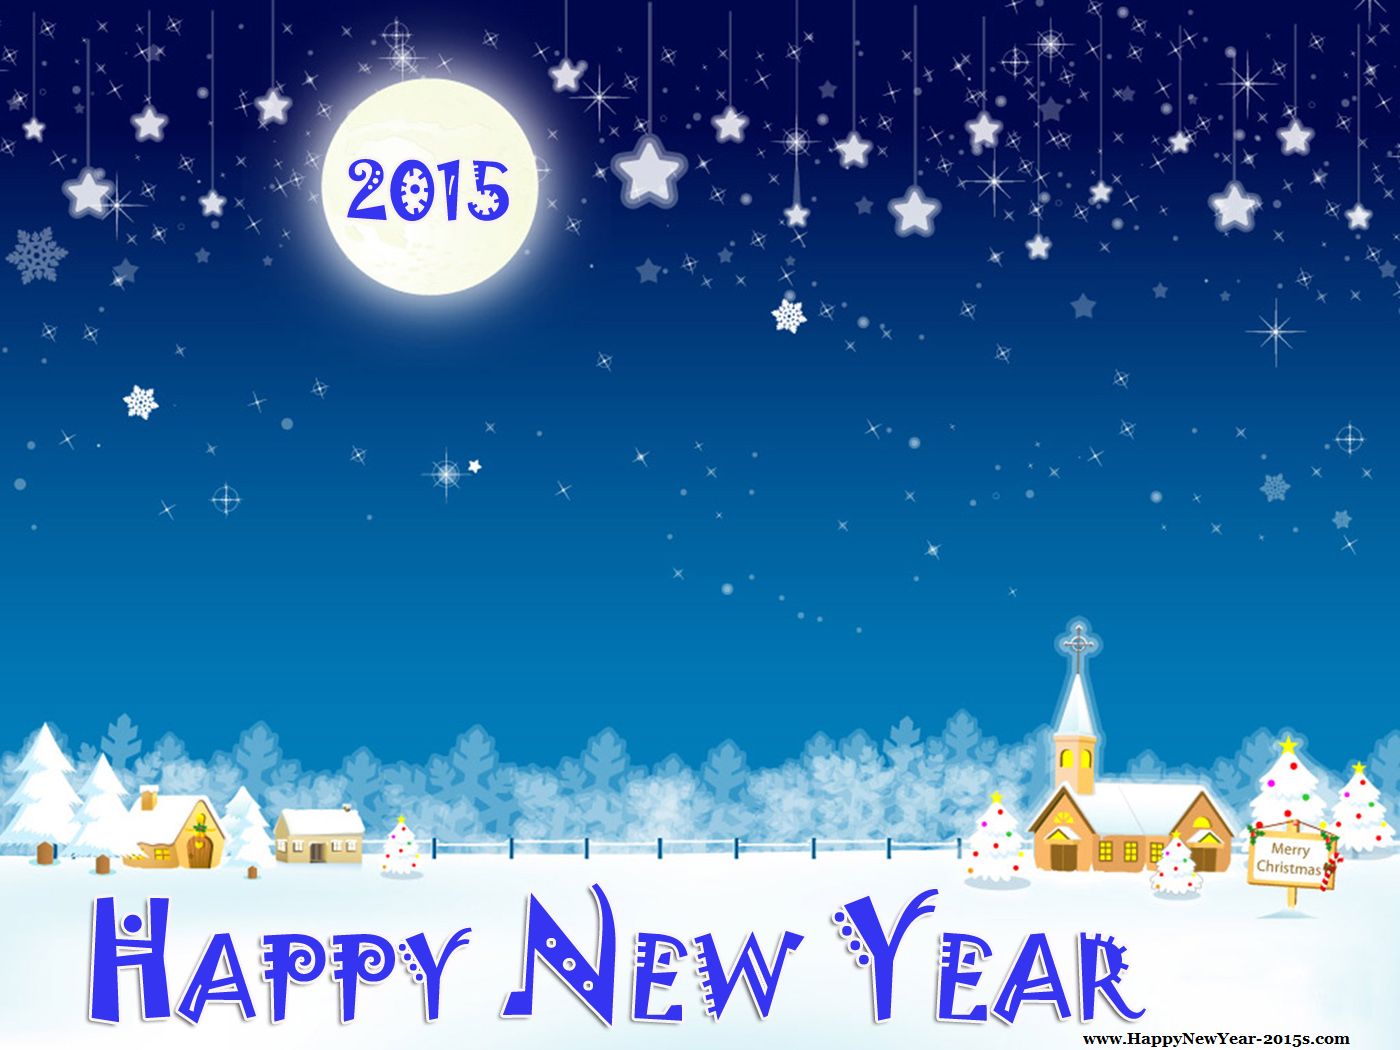 Happy new year wallpapers happy new year 2015 the new year with hope and spirit it is the time to celebrate and dance to proclaim our confidence and spirit happy new year and seasons greetings kristyandbryce Choice Image